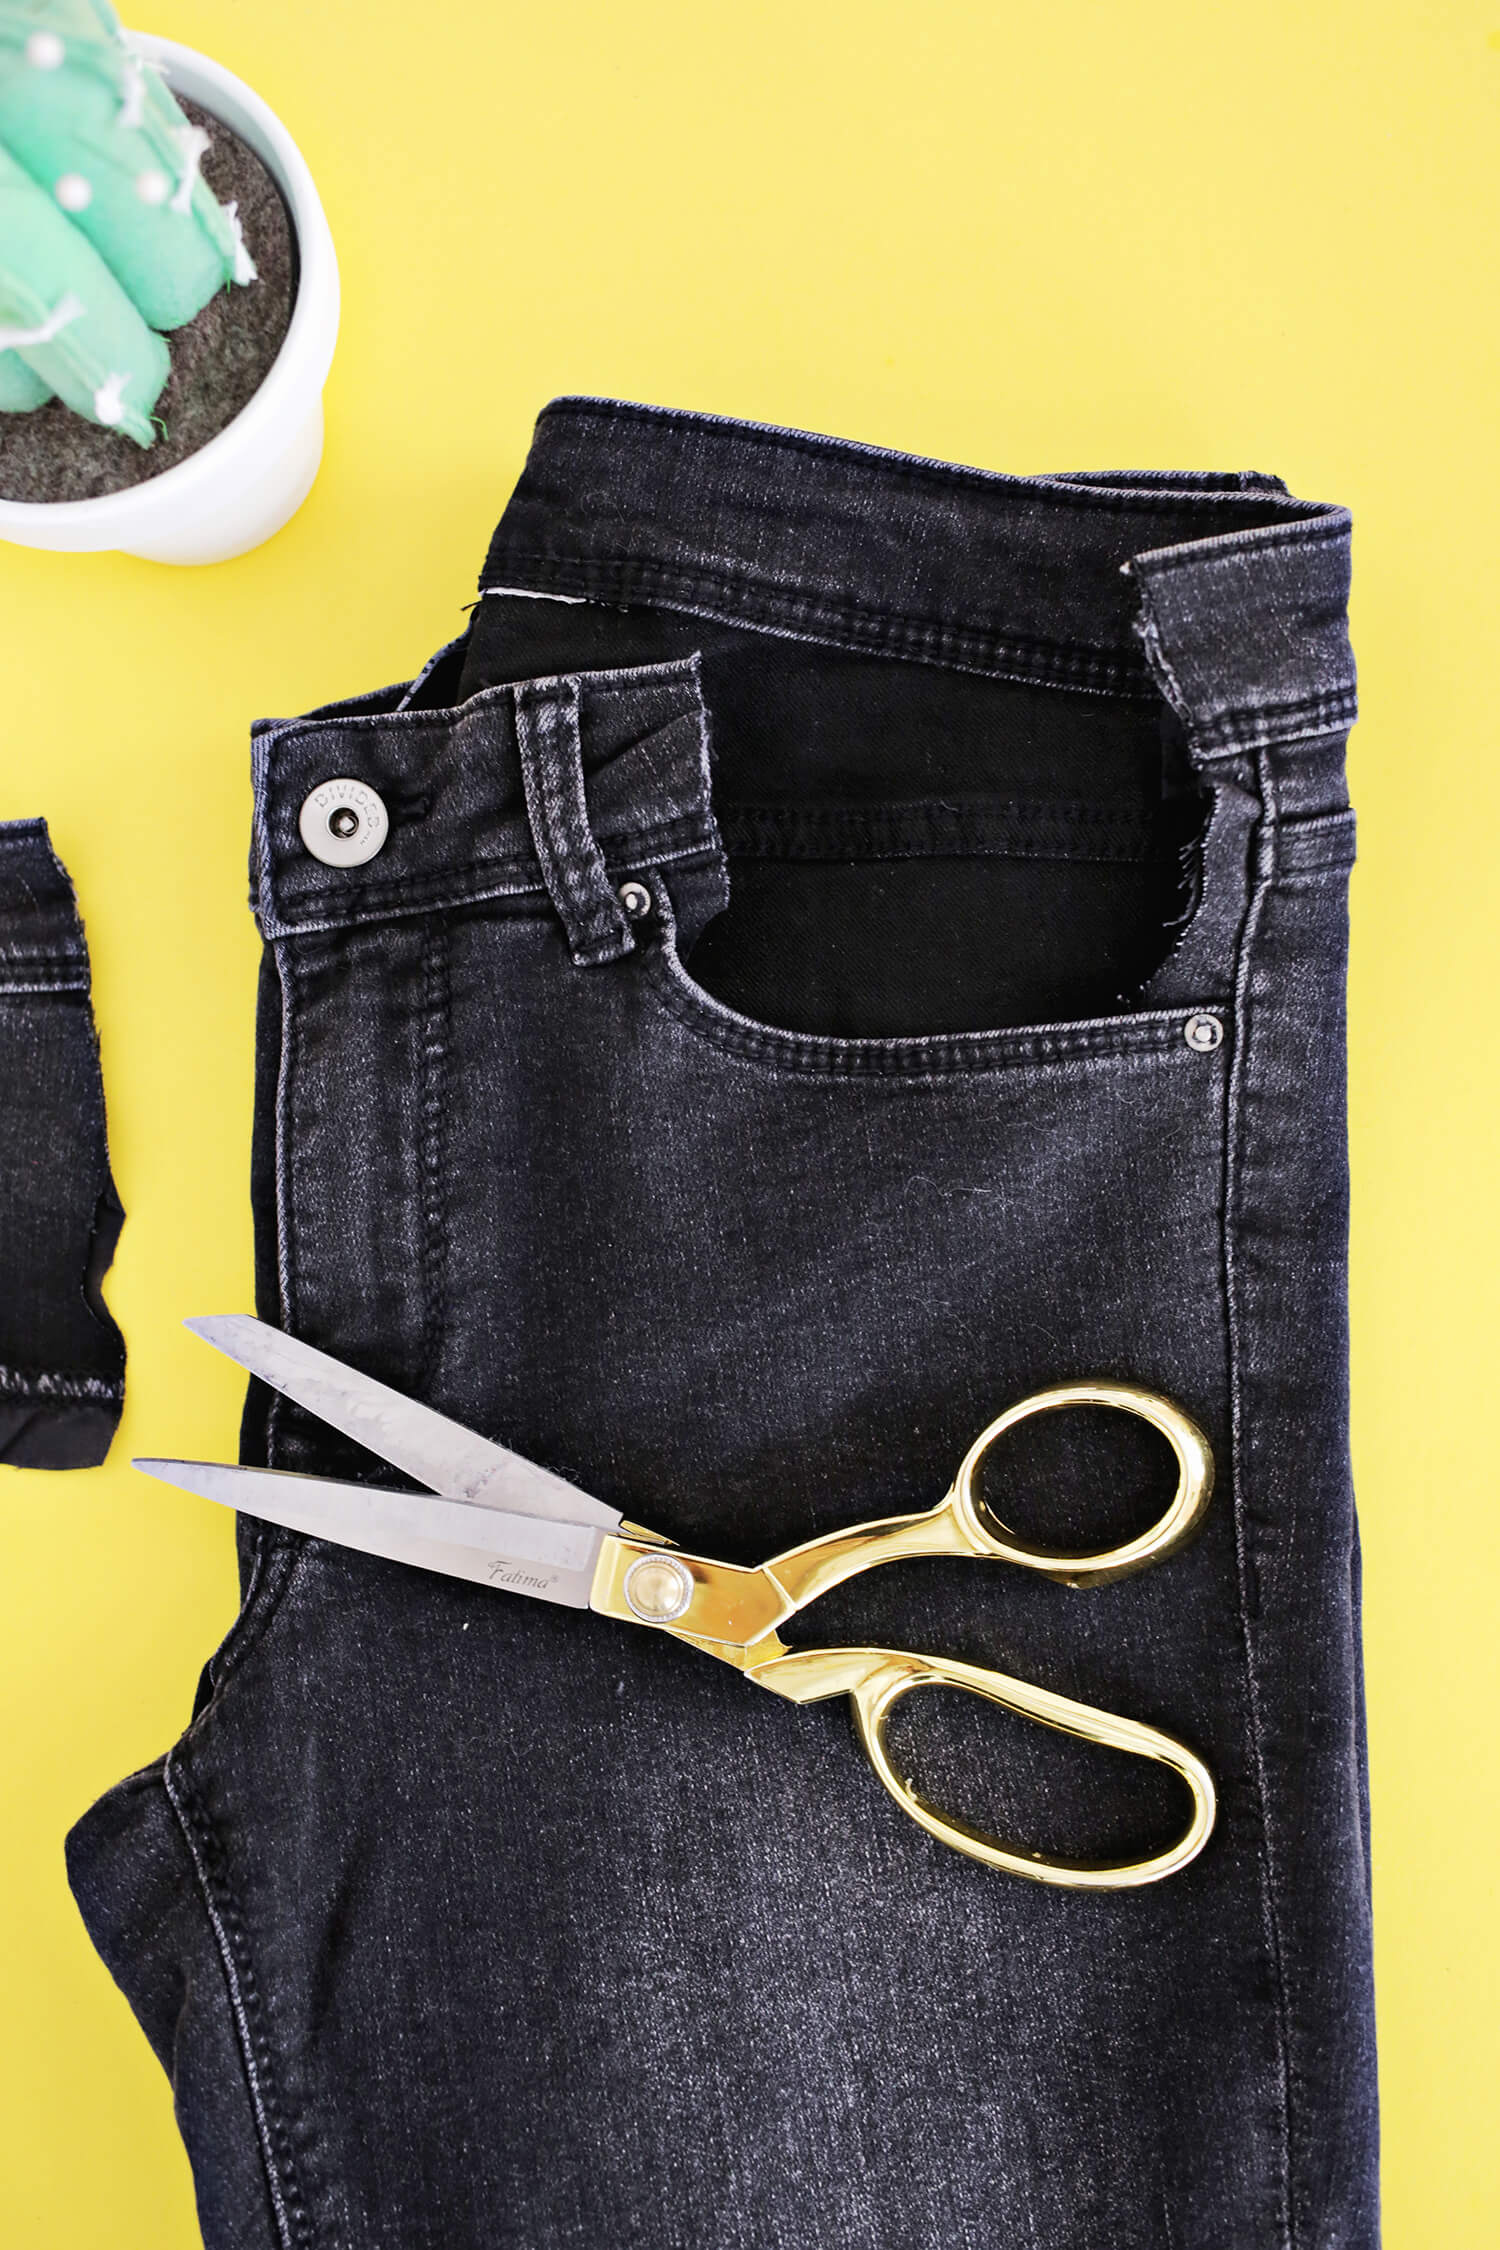 136b95e0eb8 This is what your cut will look like from the front of your jeans. The  waistband above the pocket is removed but the front layer of the pocket is  still in ...